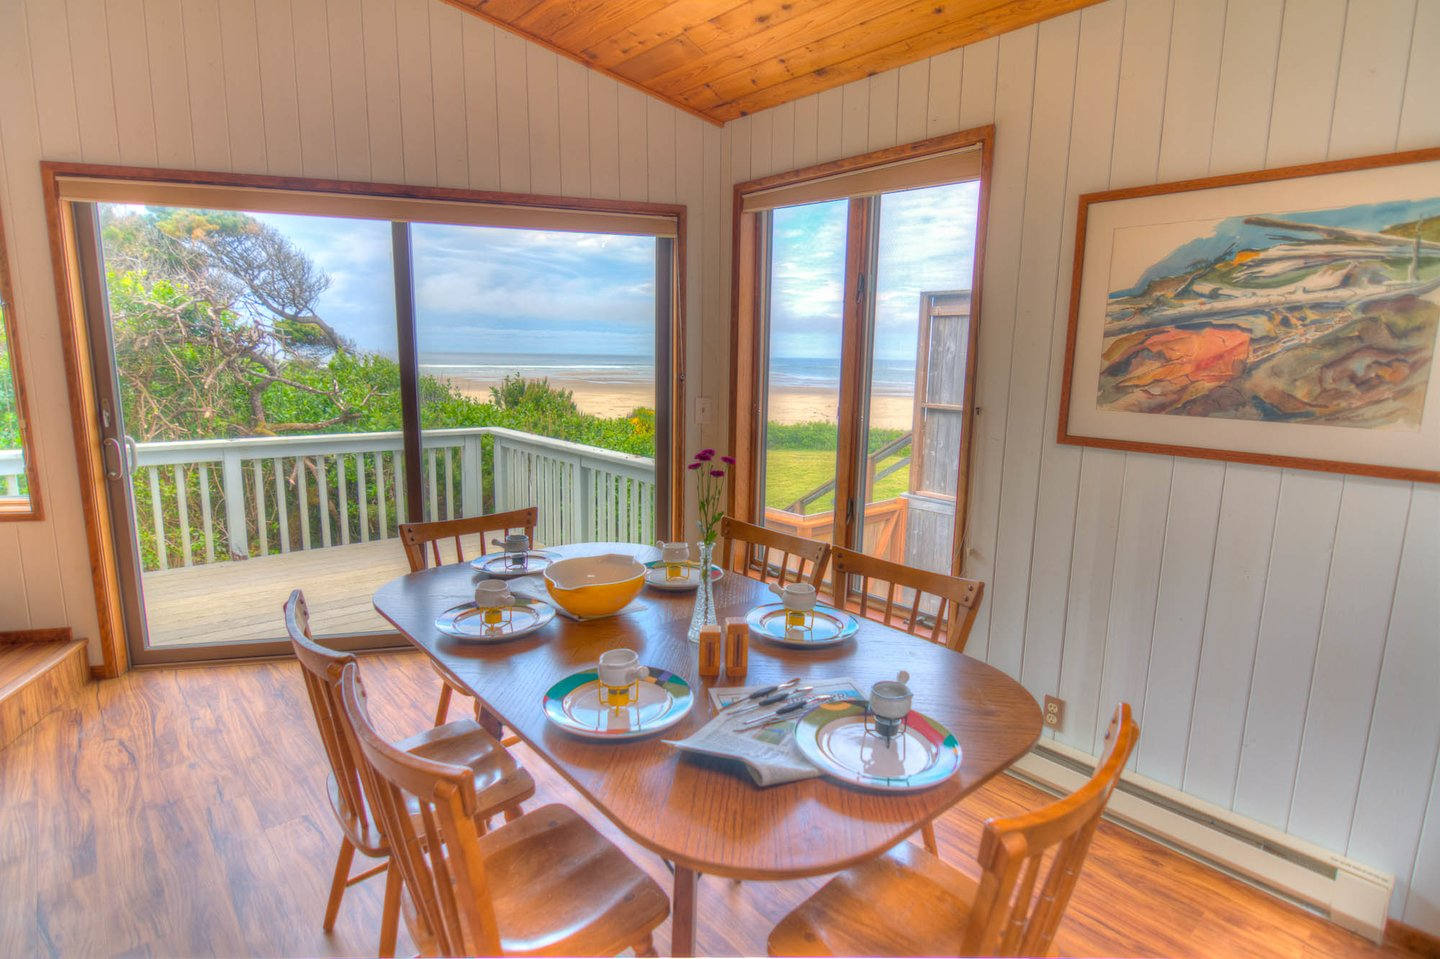 The dining room has a sliding glass door that opens on to the deck to allow the ocean breeze in!